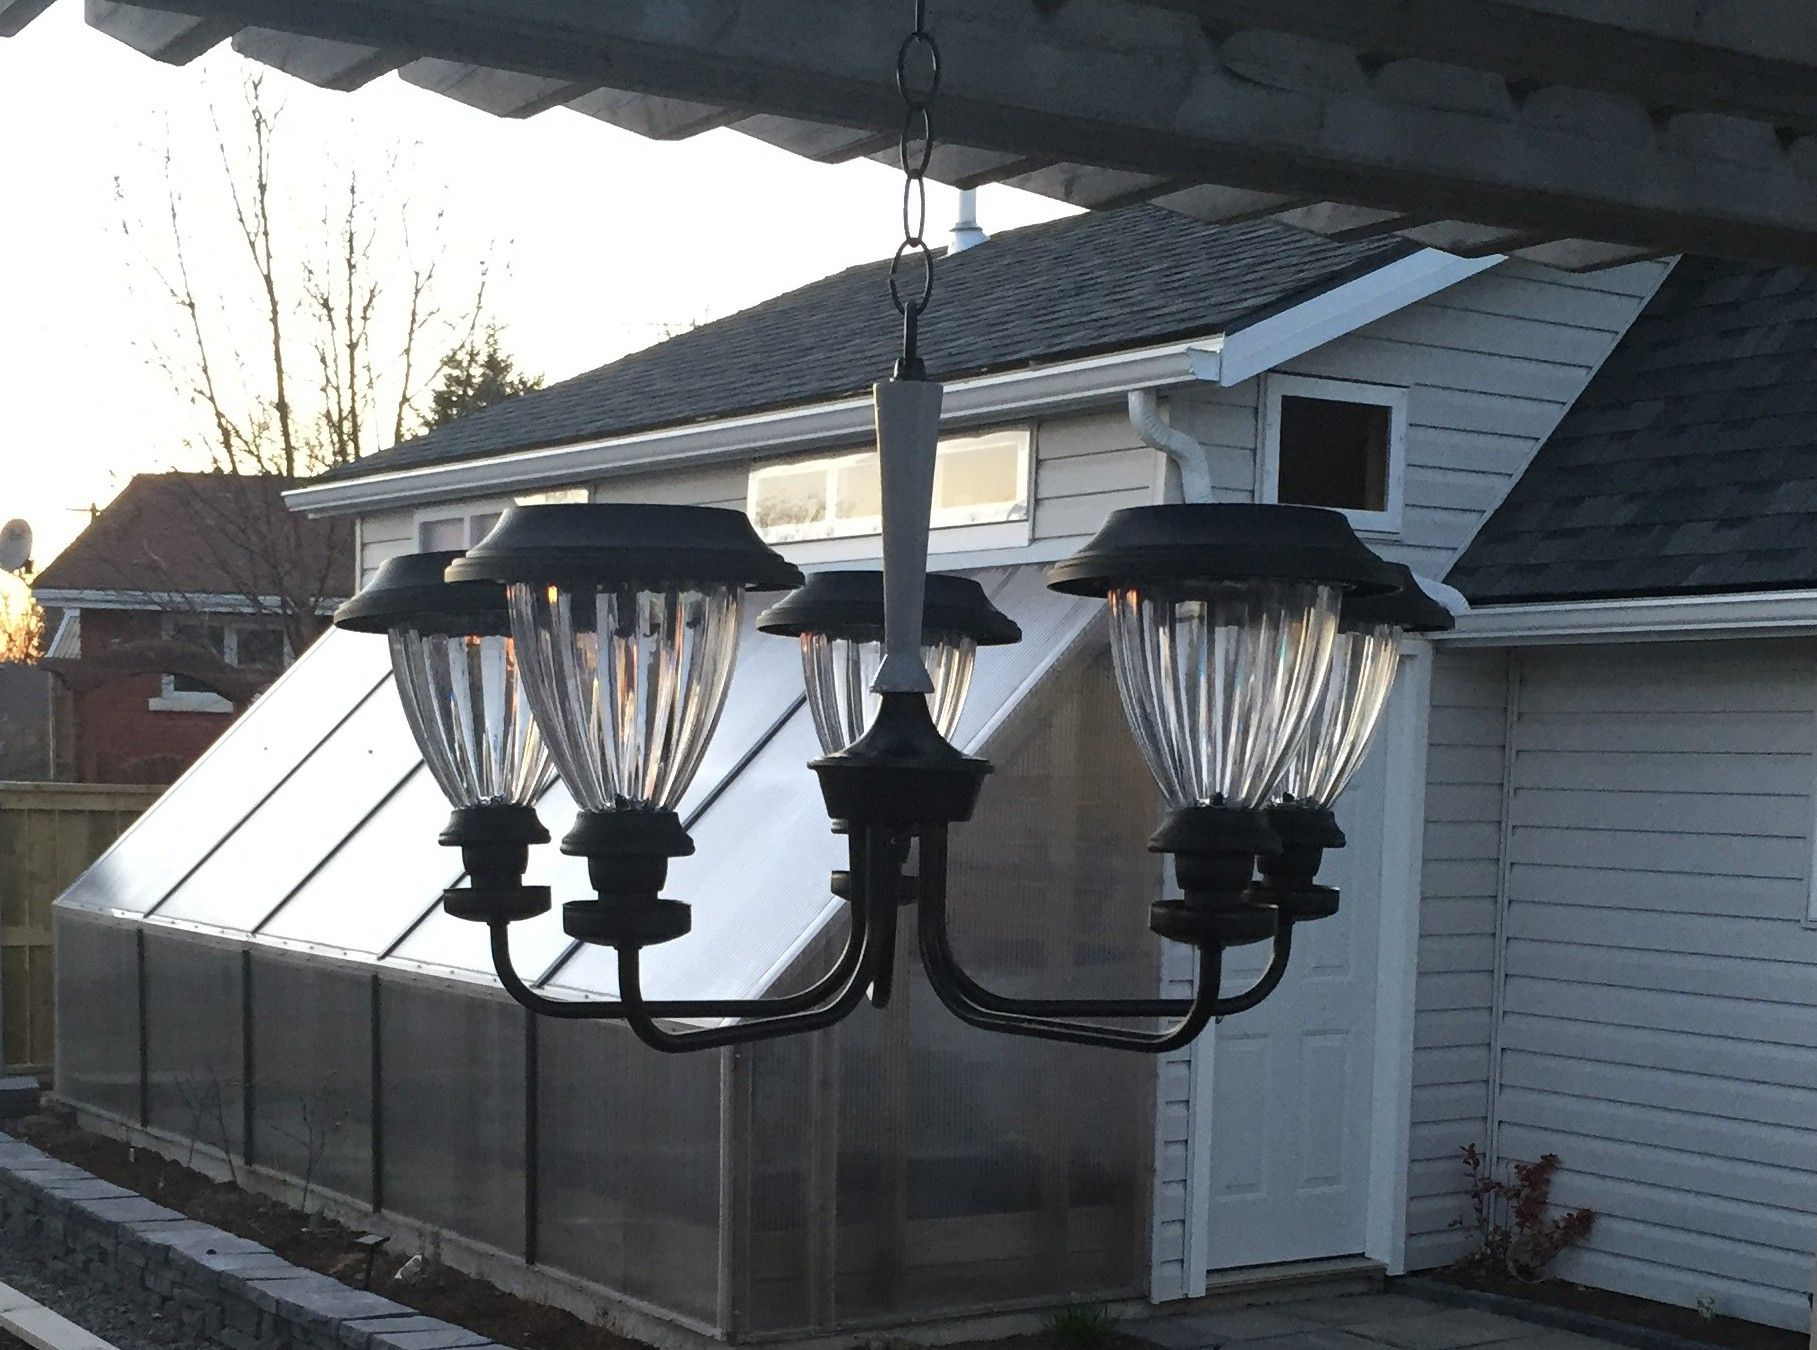 DIY SOLAR GARDEN CHANDELIER Love the look of a solar garden